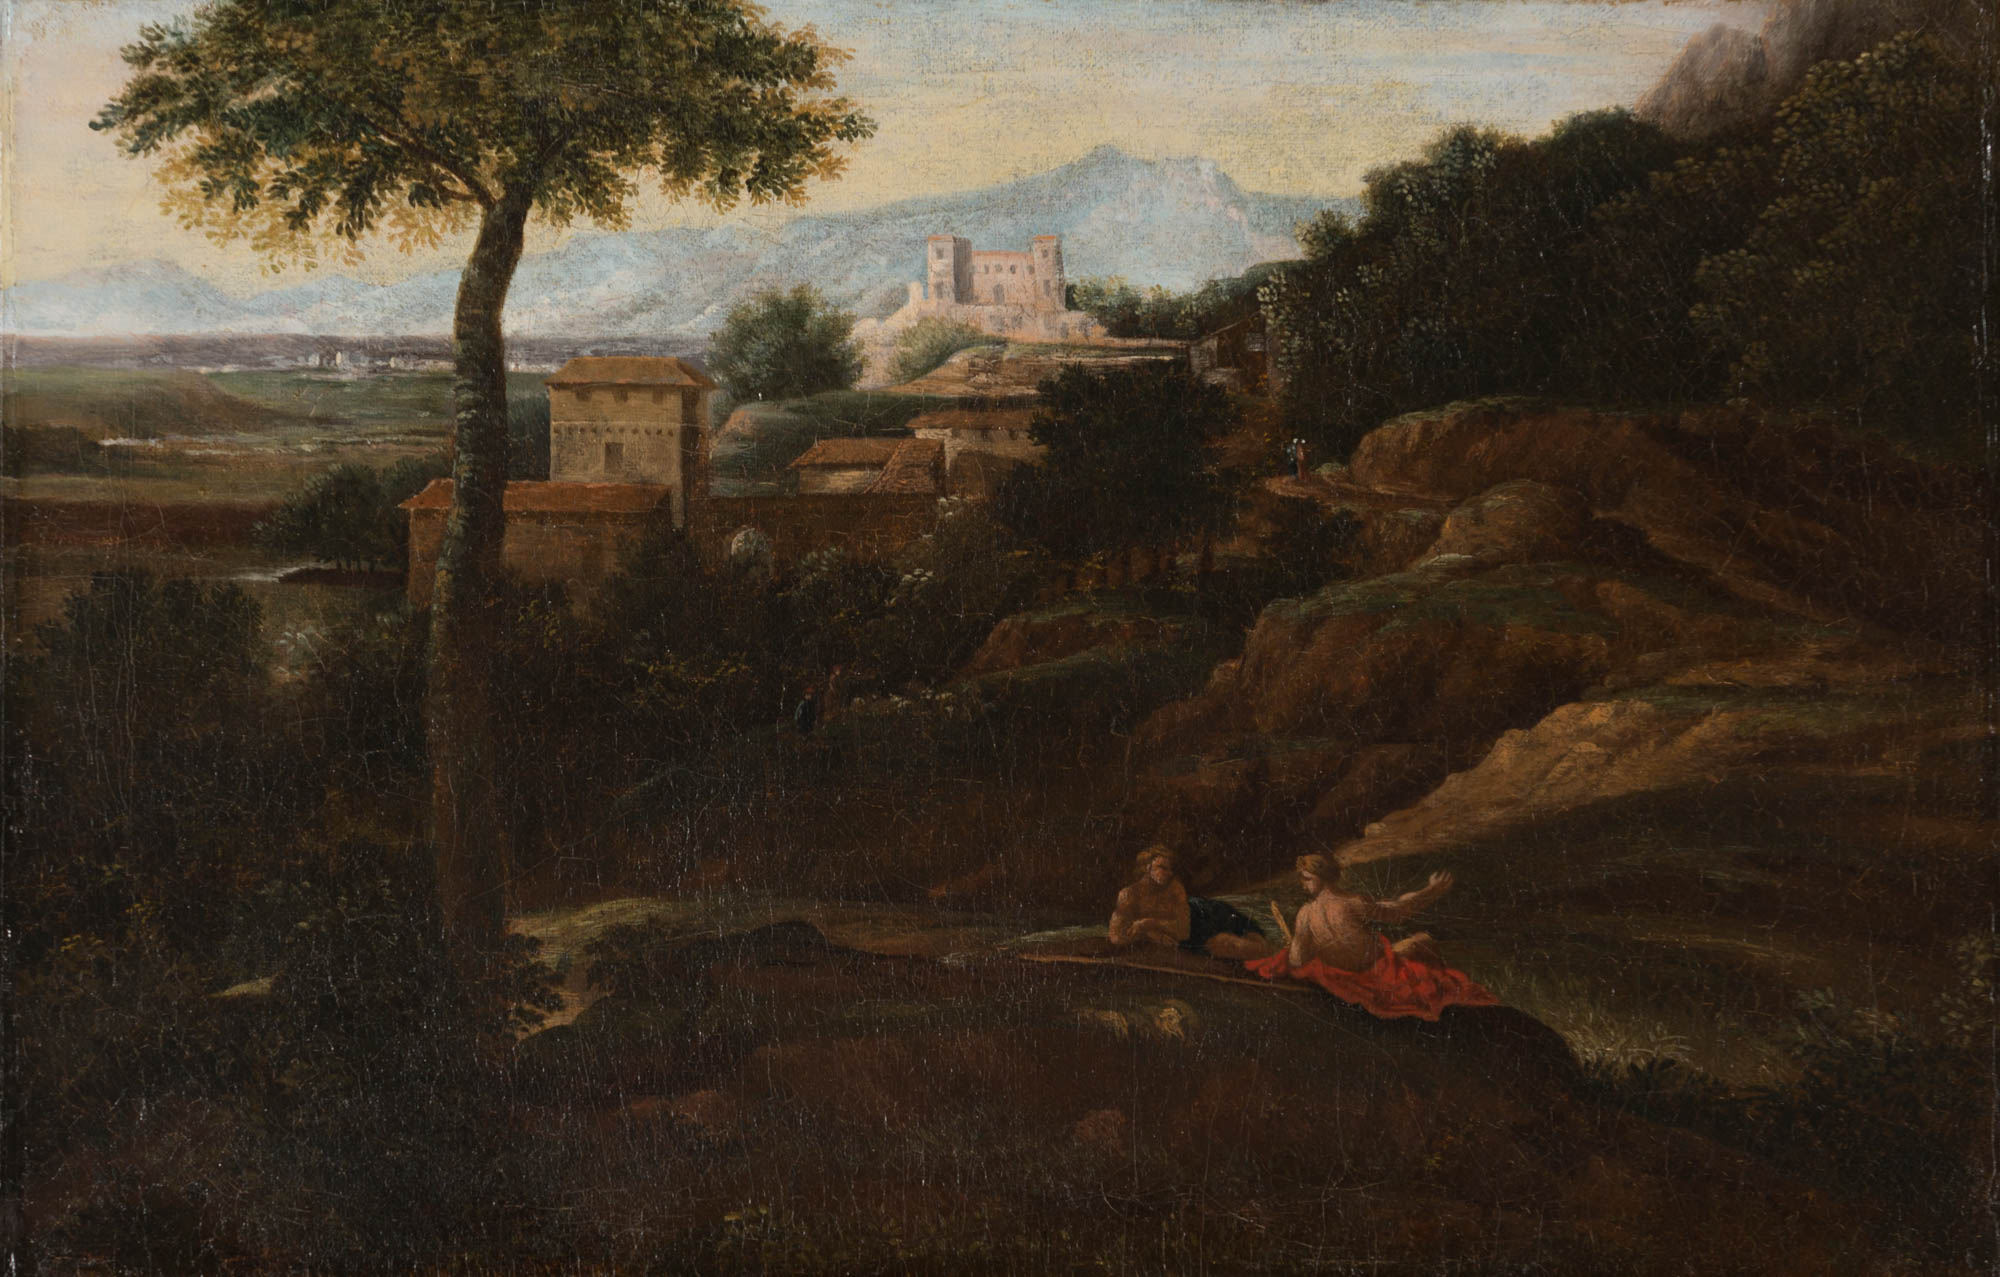 A Southern Landscape by a Follower of Gaspard Dughet  (1615-1675).